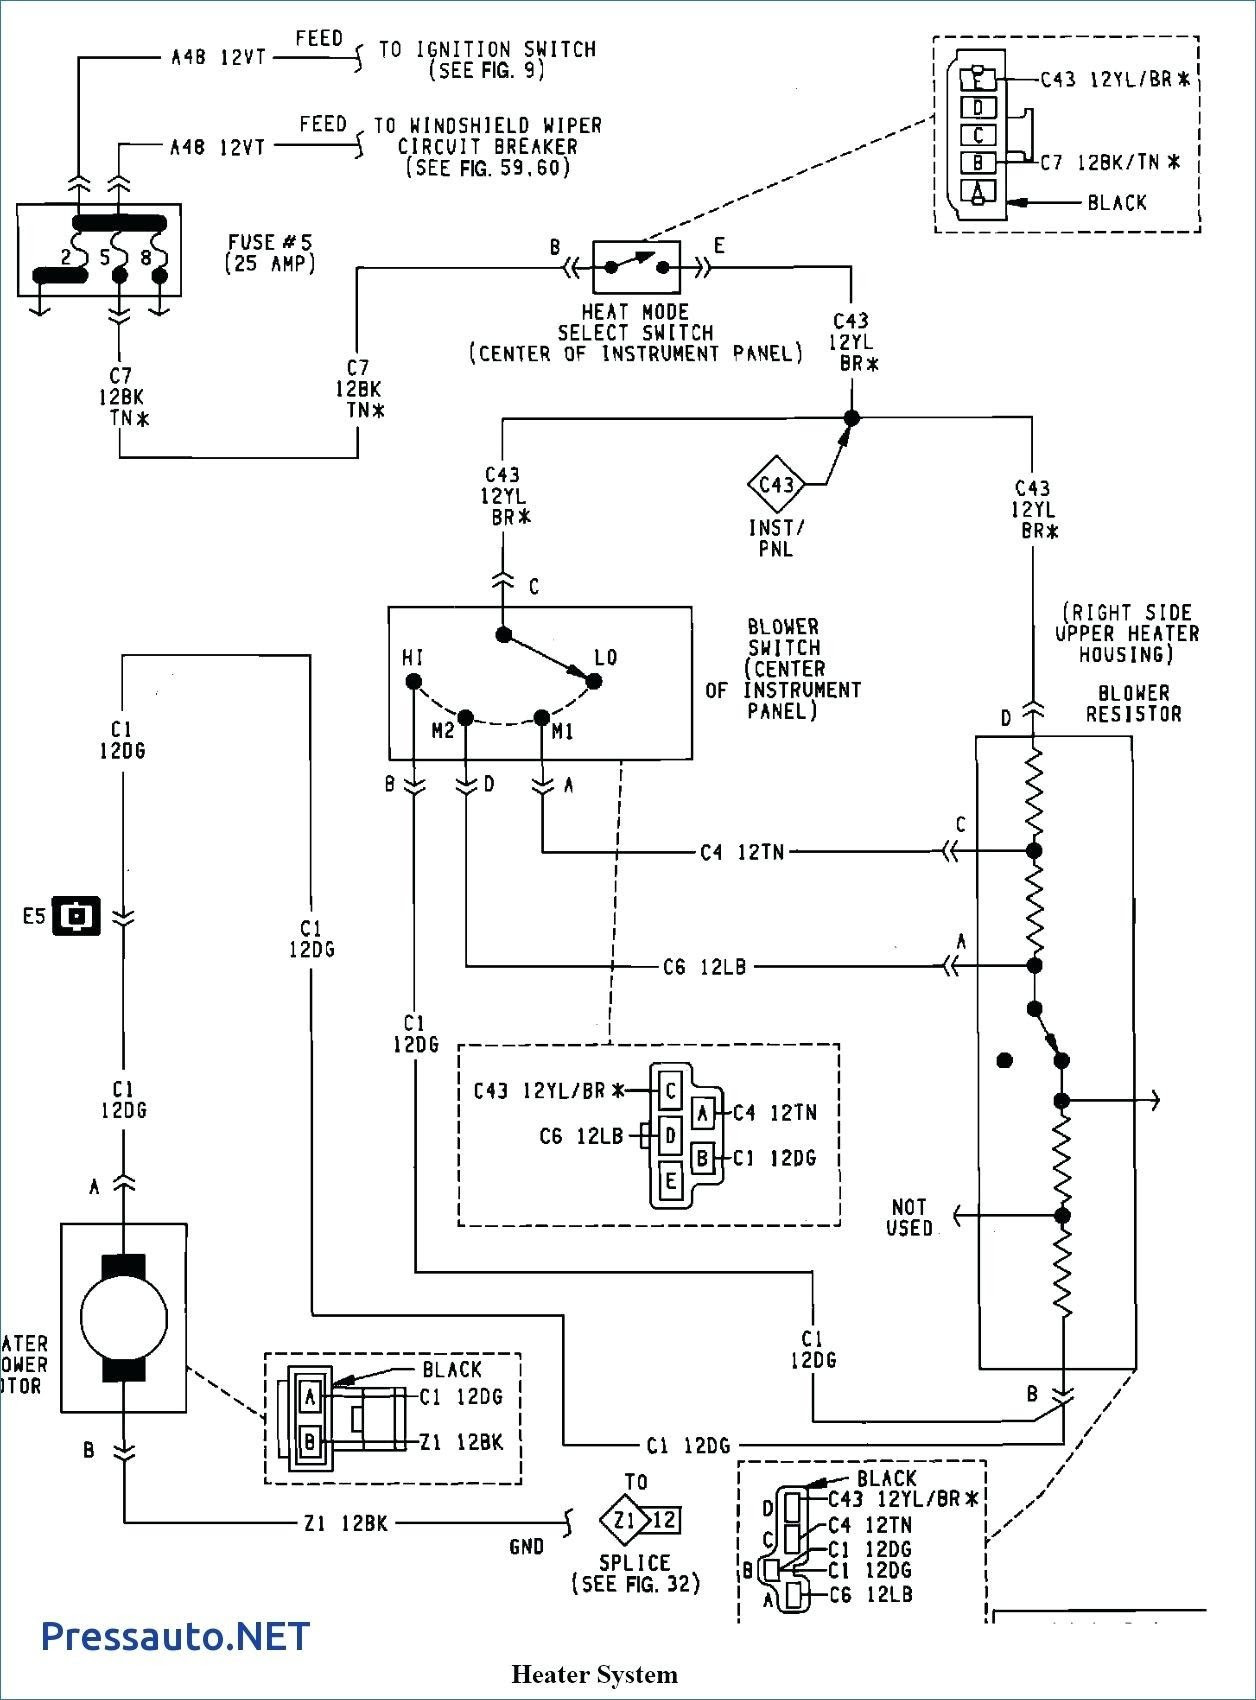 Radio Wiring Diagram 1998 Jeep Grand Cherokee - Wiring Diagram